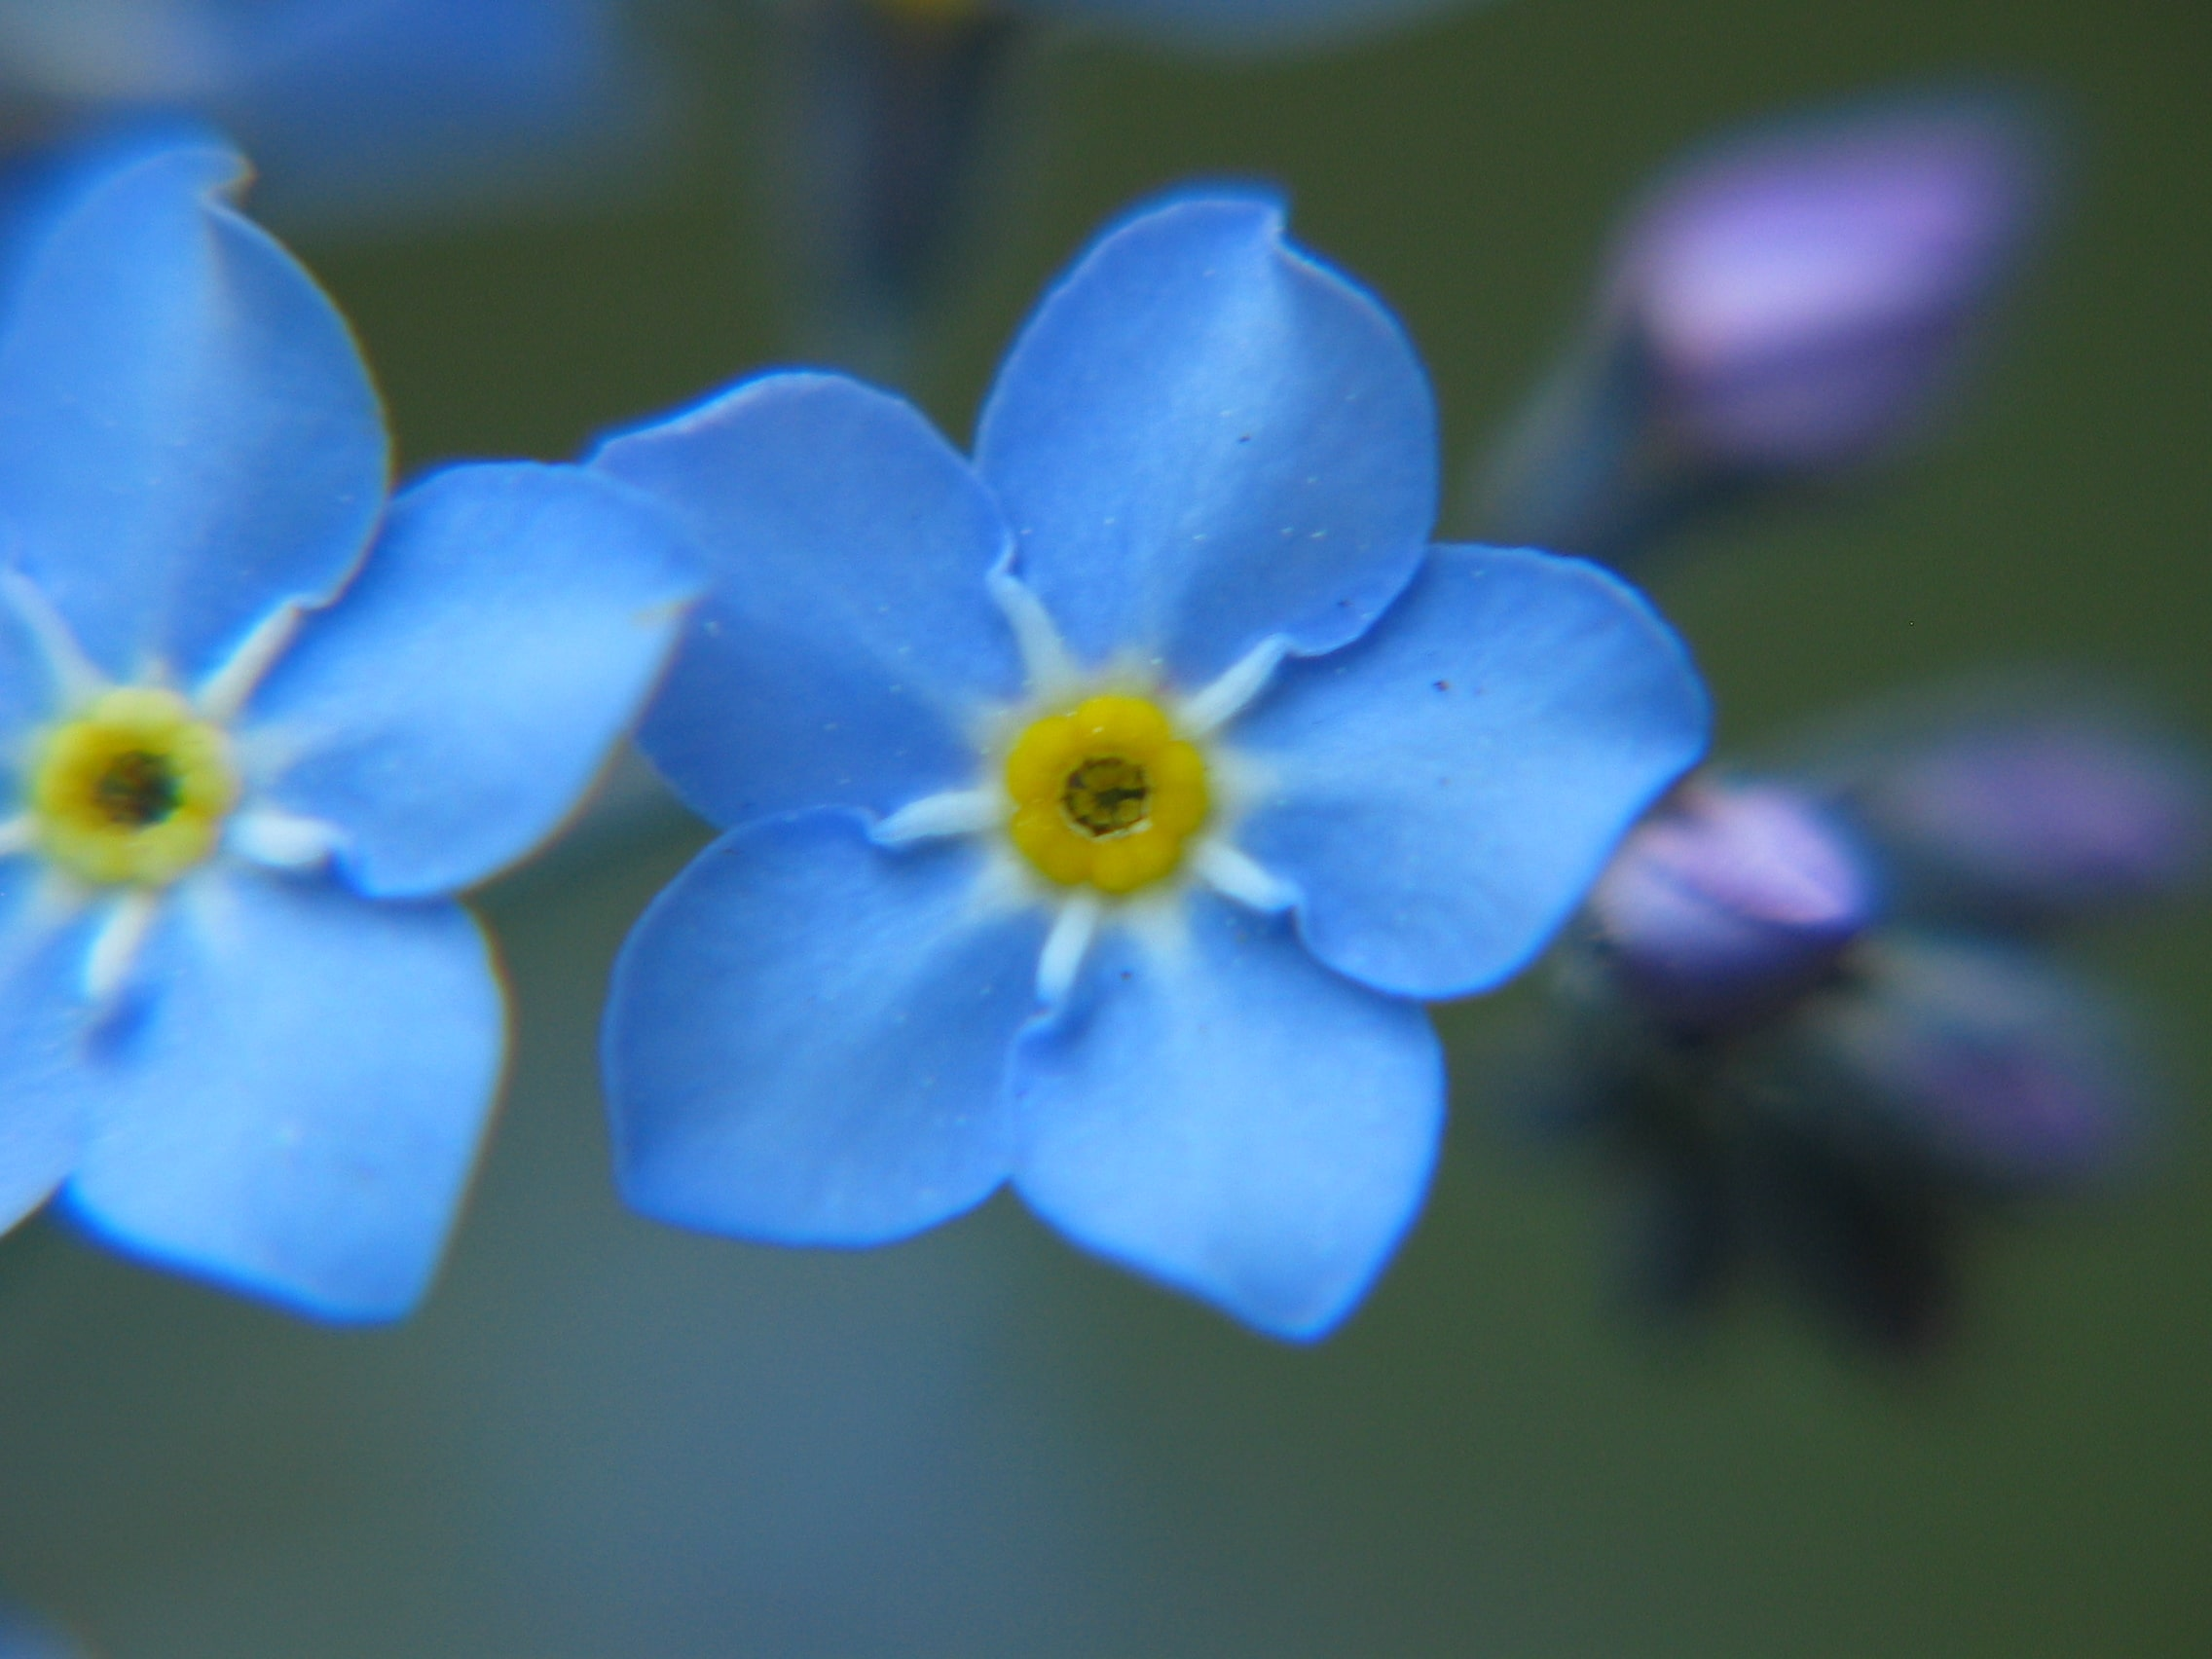 Forget me not closeup 2005 01